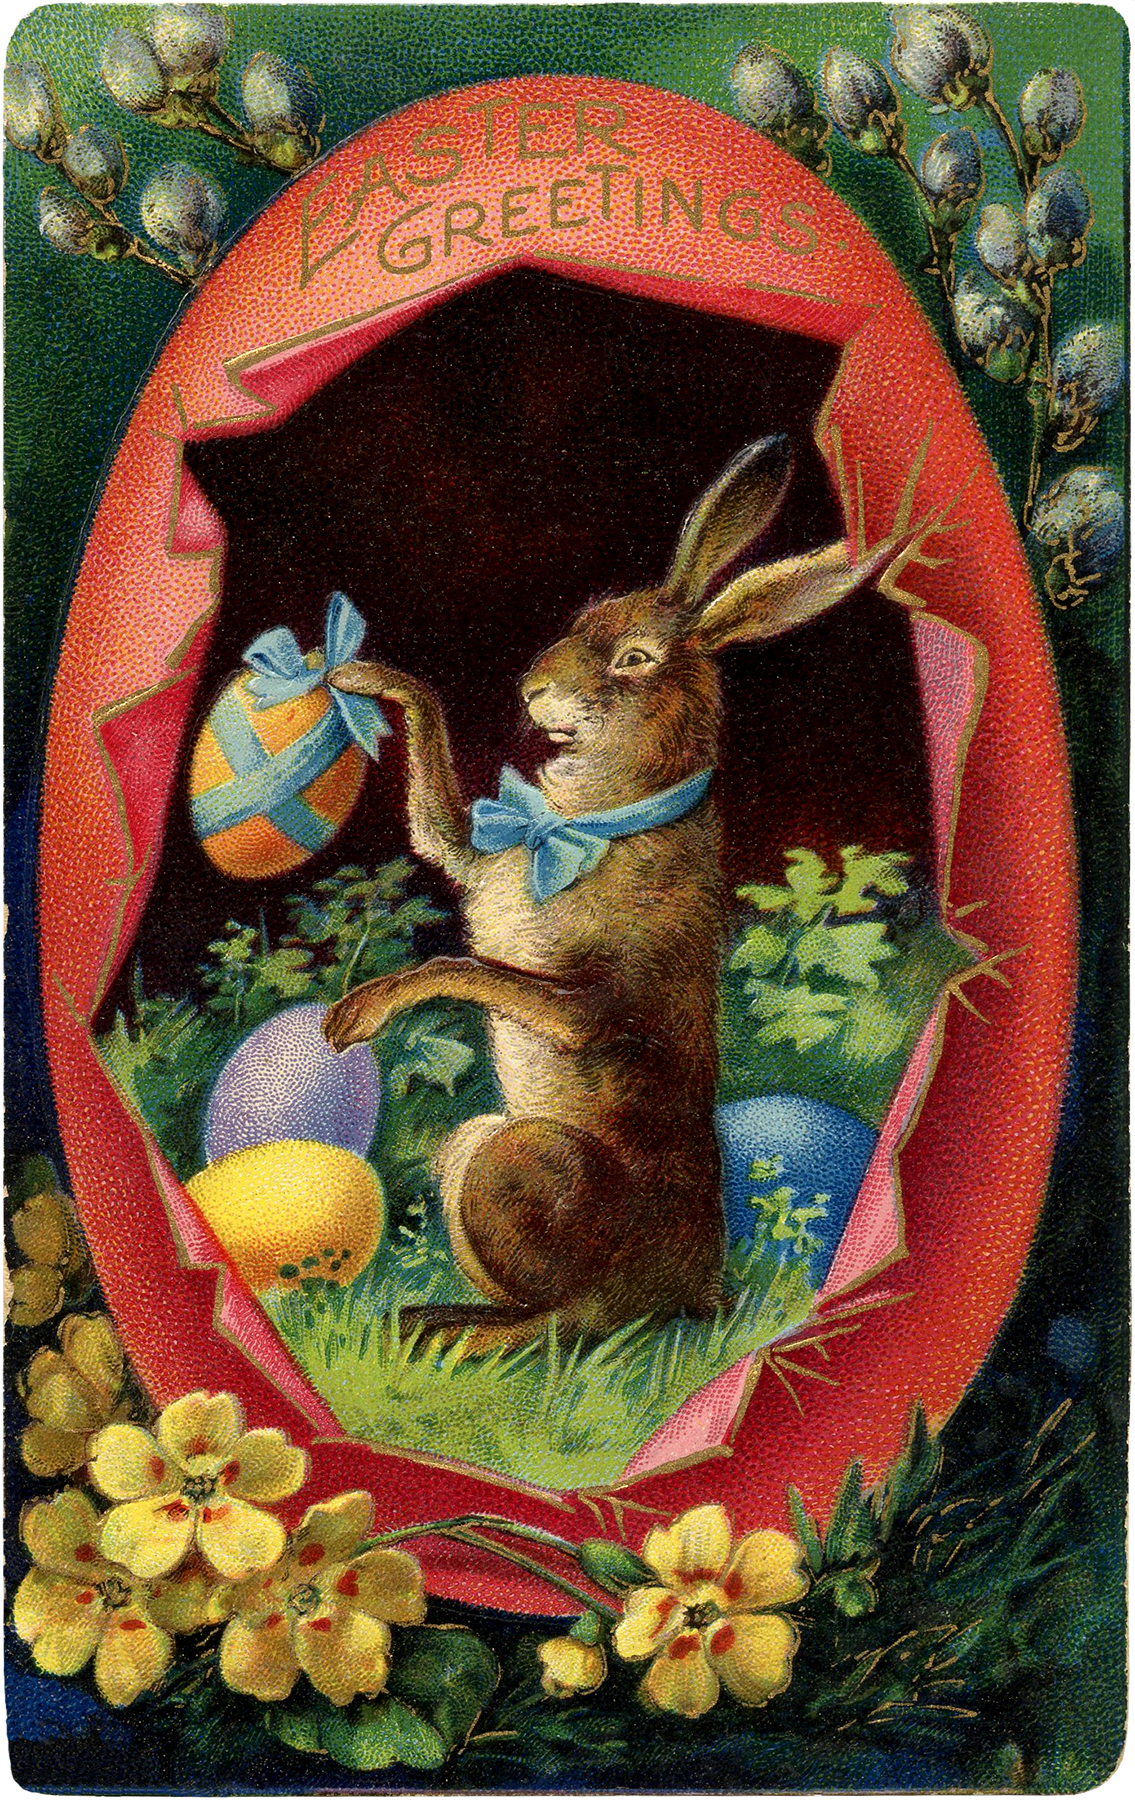 21 Easter Bunny Images Free.